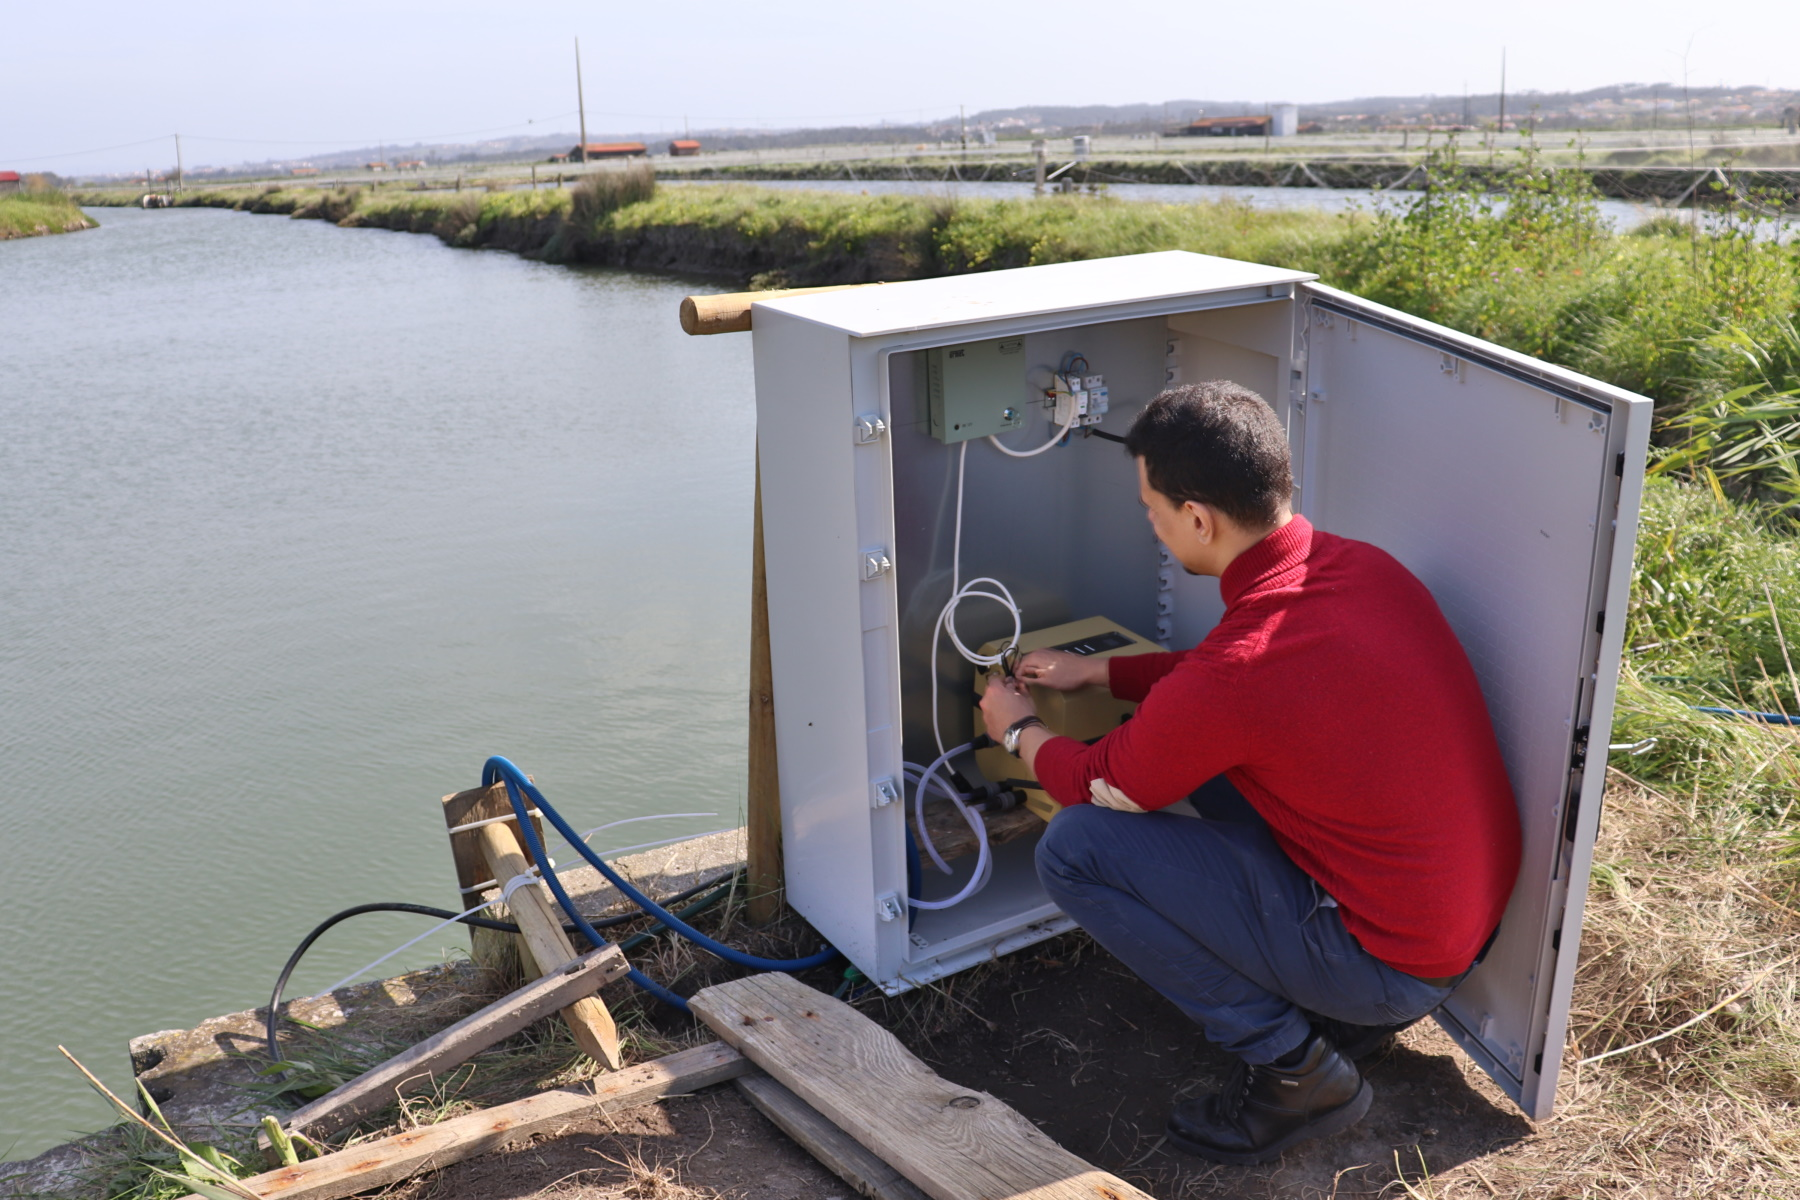 Water Quality Monitoring in an Aquaculture at Figueira da Foz